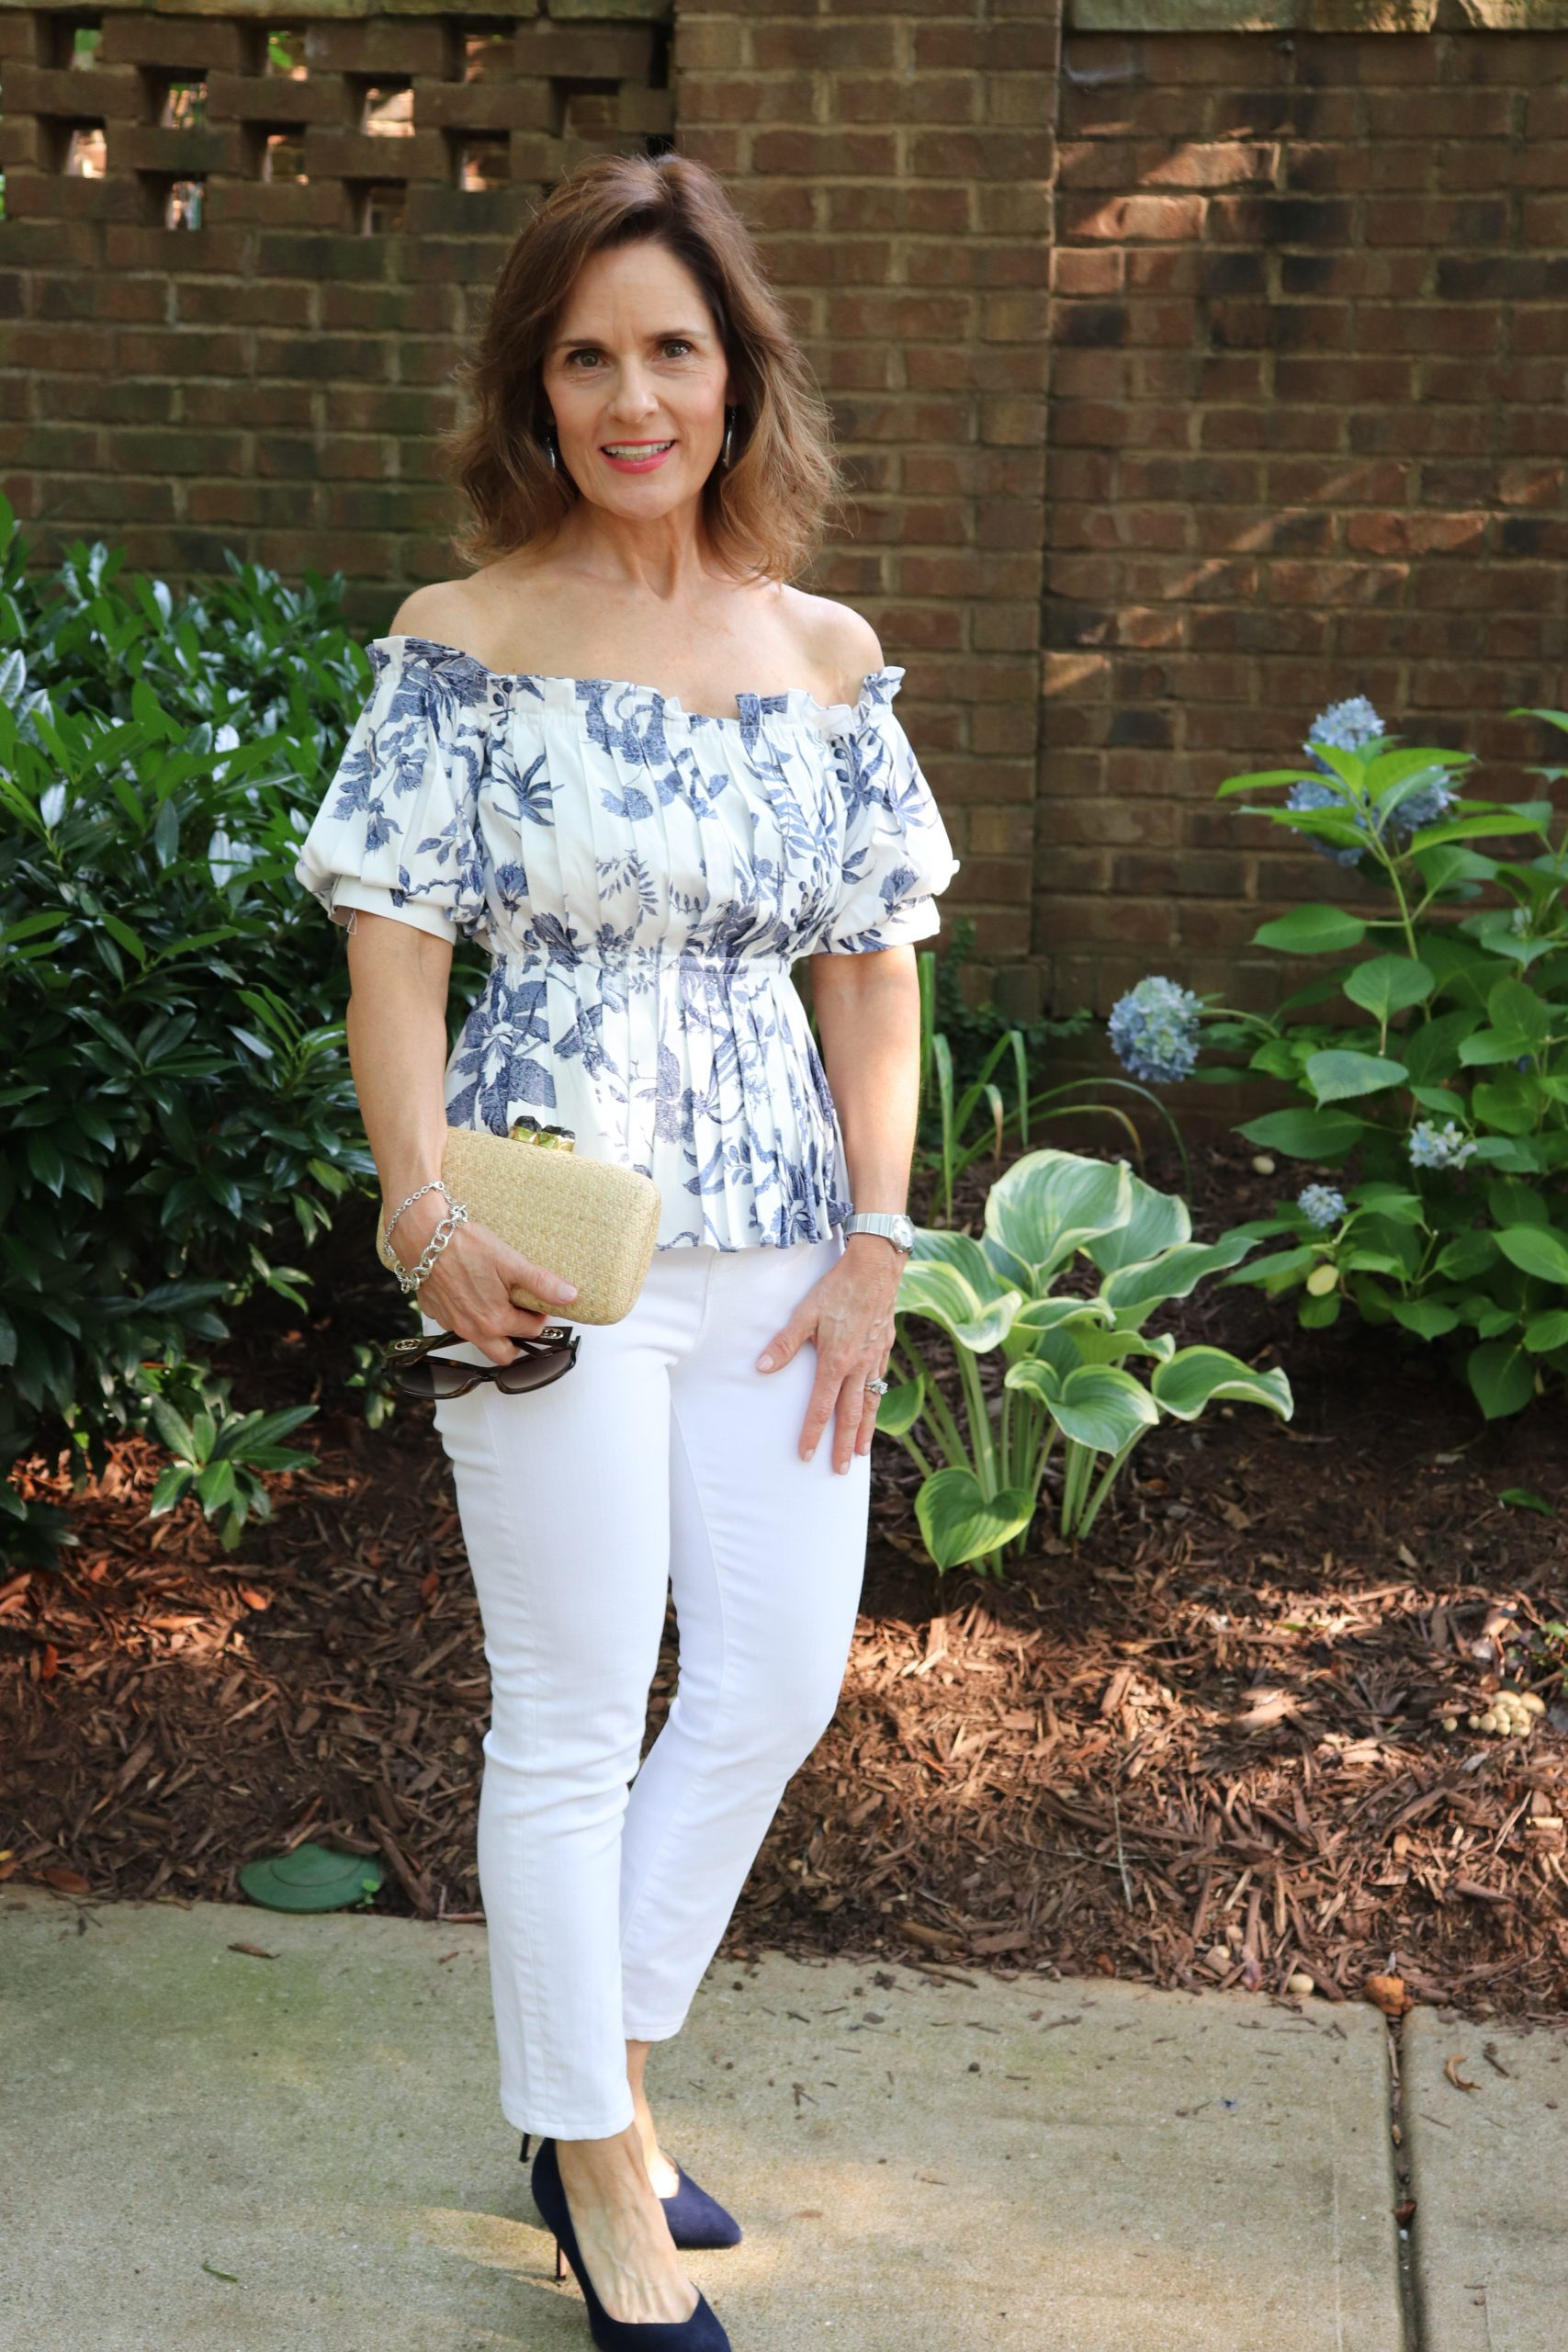 woman over 50 wearing a white off the shoulder top with blue flowers white denim, blue suede pumps, and carrying a small wicker handbag and glasses